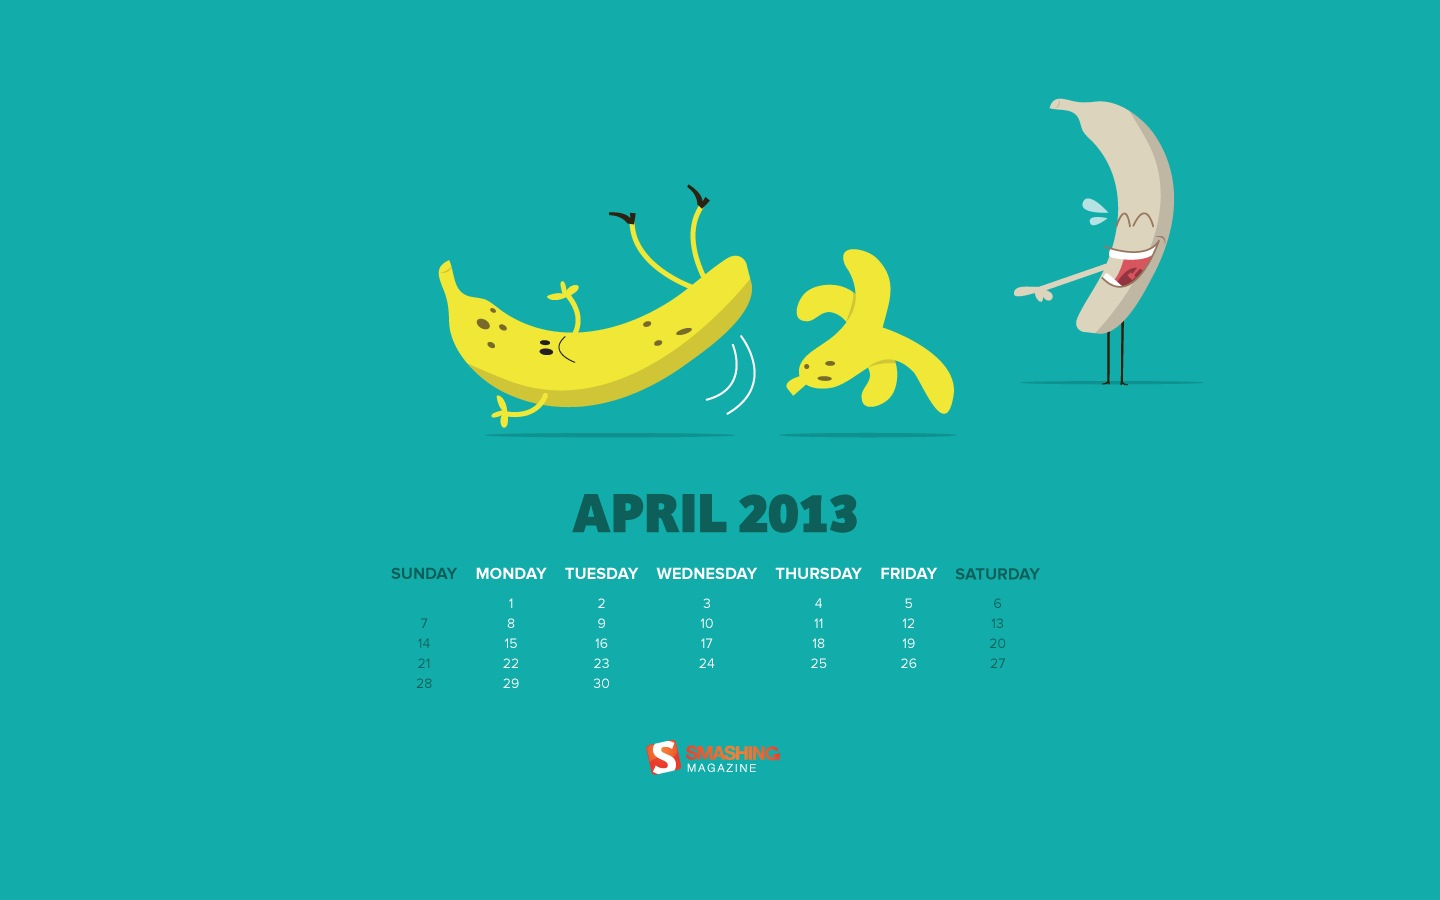 Month Calendar Wallpaper 32298